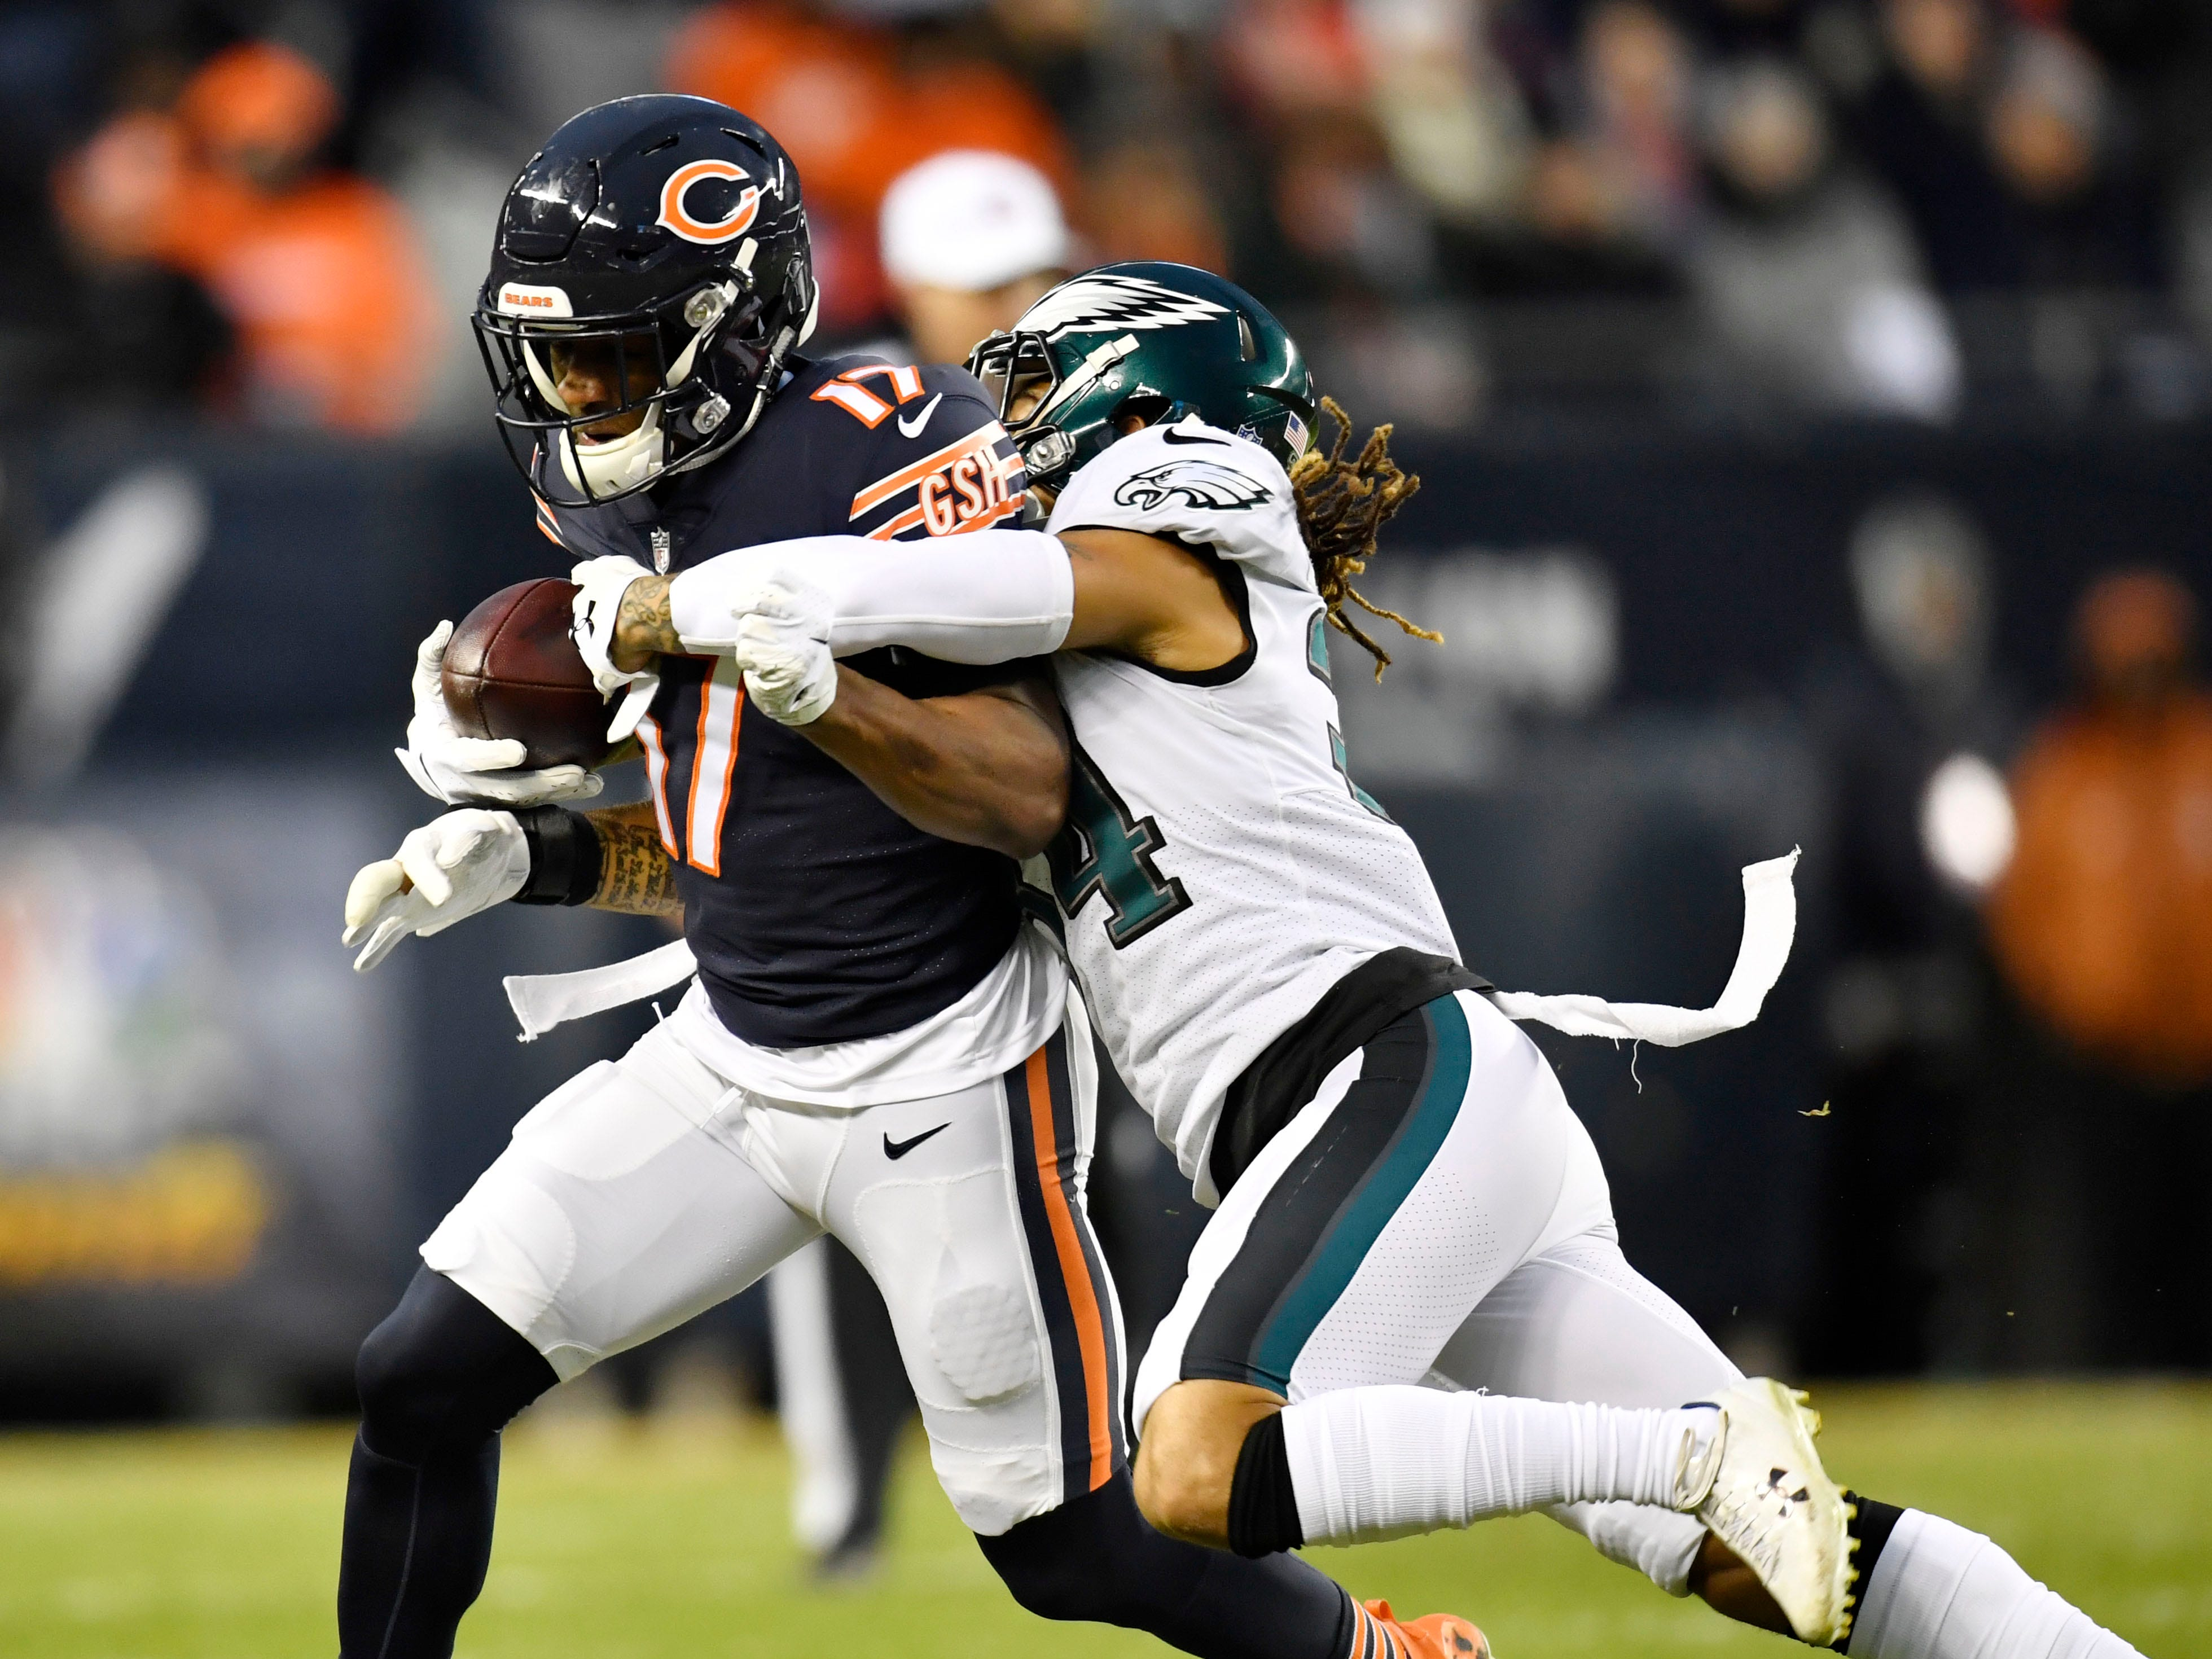 Chicago Bears wide receiver Anthony Miller (17) is tackled by Philadelphia Eagles cornerback Cre'von LeBlanc (34) in the first half a NFC Wild Card playoff football game at Soldier Field.